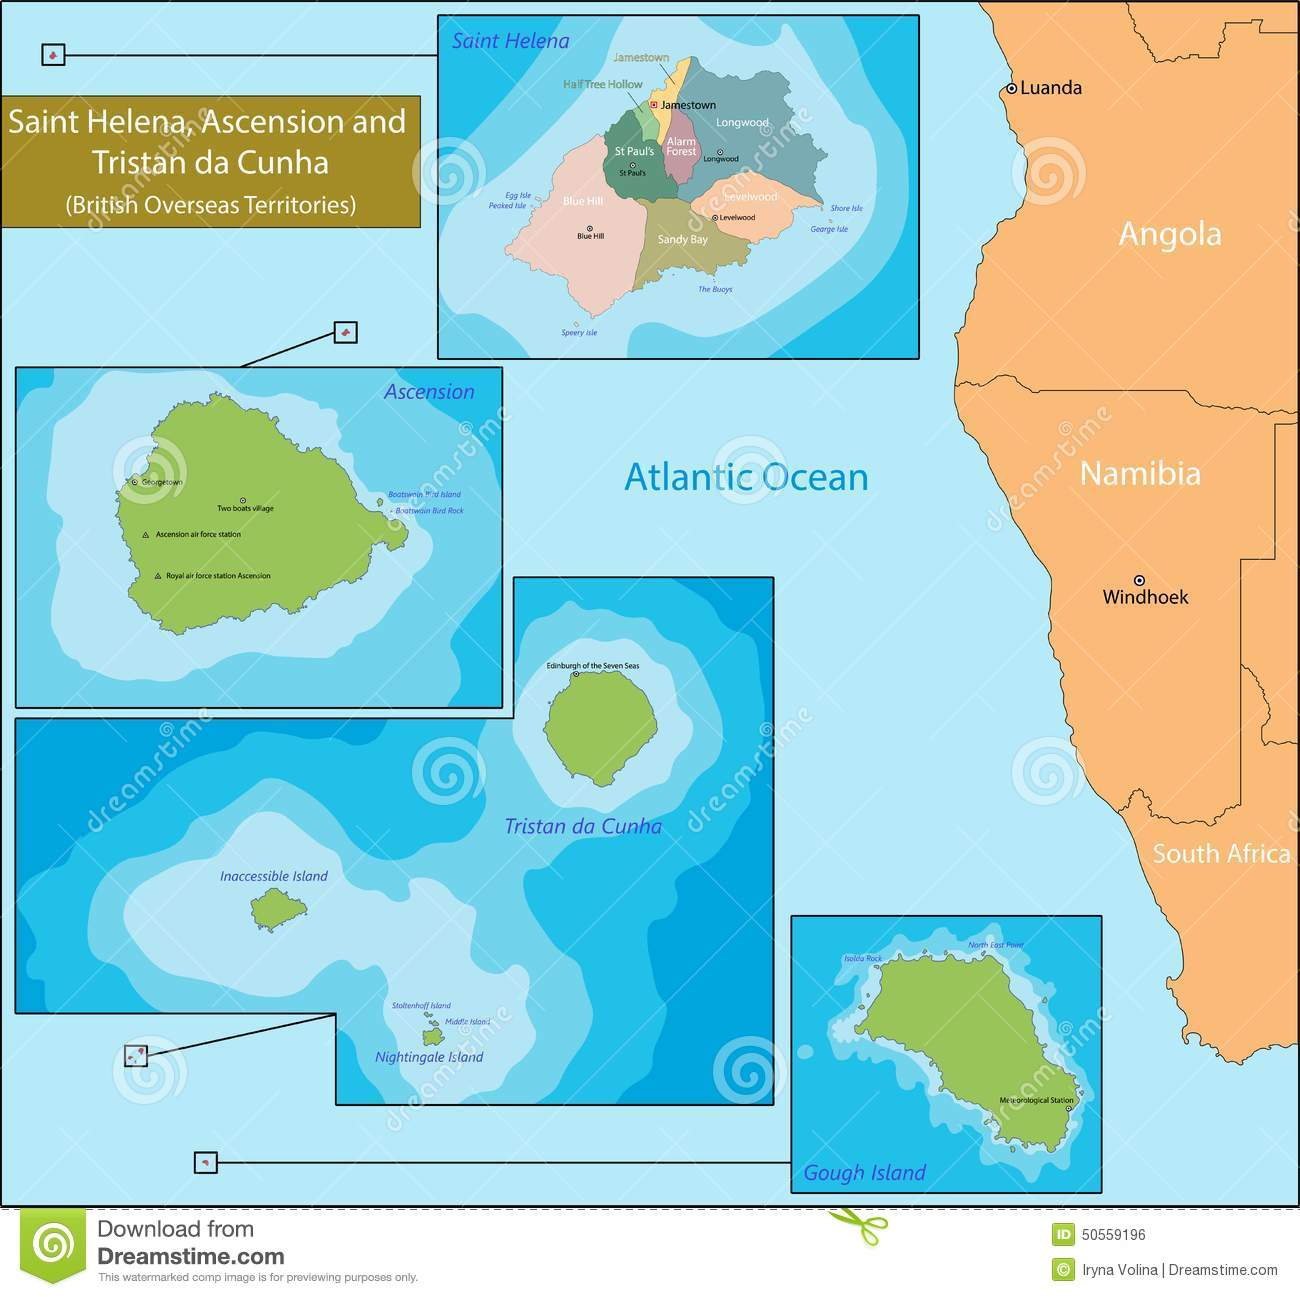 ascension and tristan da cunha 1 corporal punishment of children in st helena, ascension and tristan da cunha report prepared by the global initiative to end all corporal punishment of.